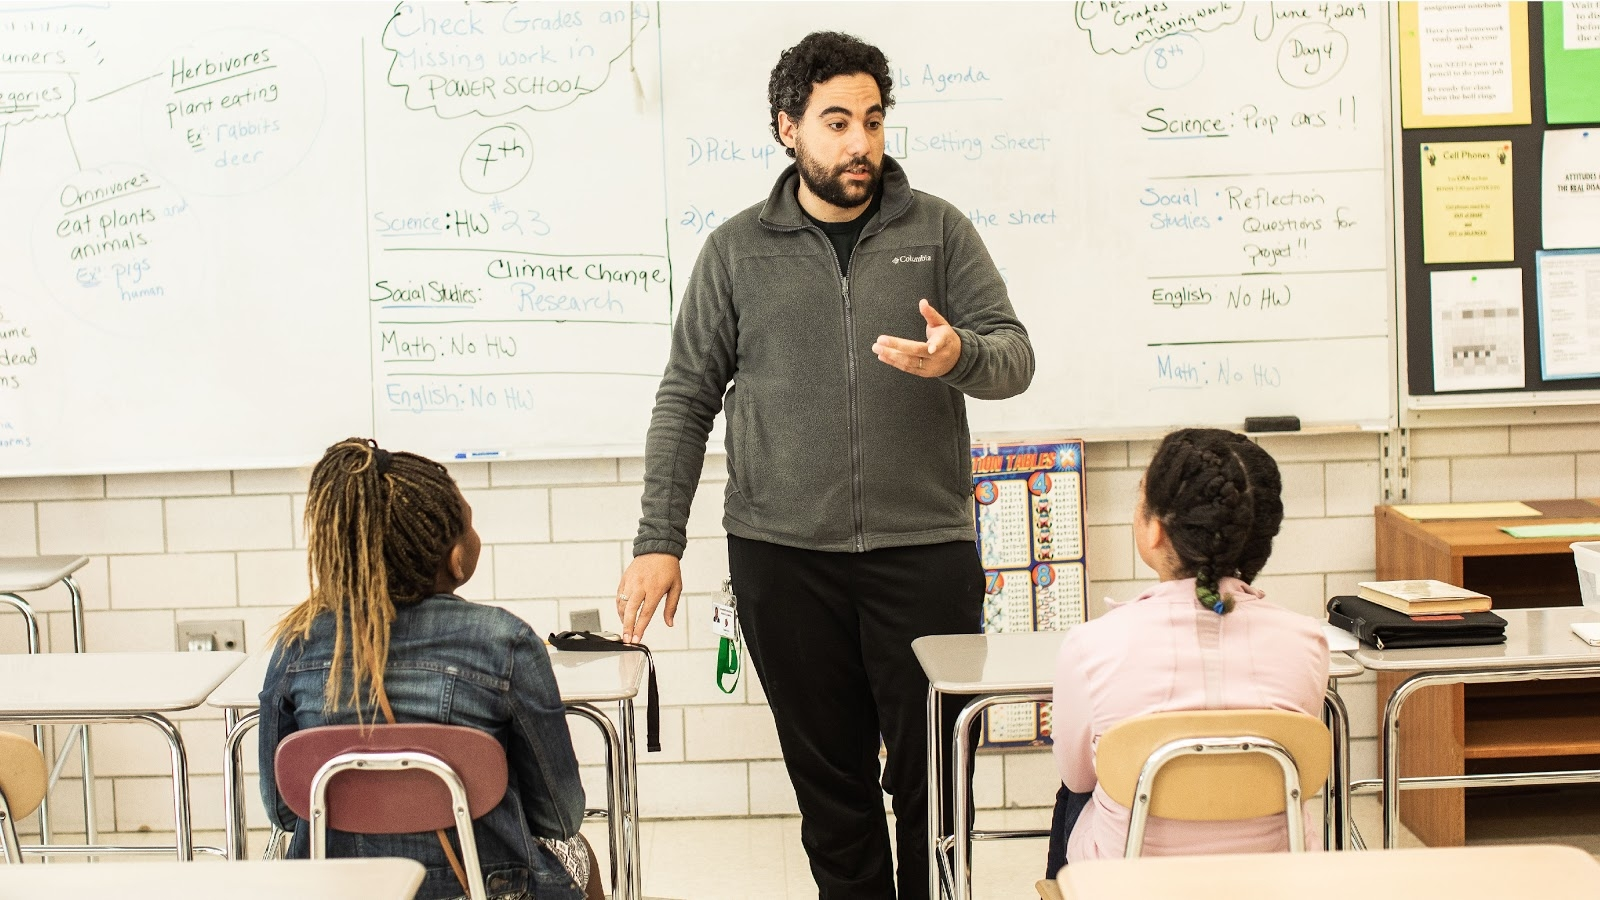 Teaching two students in a classroom